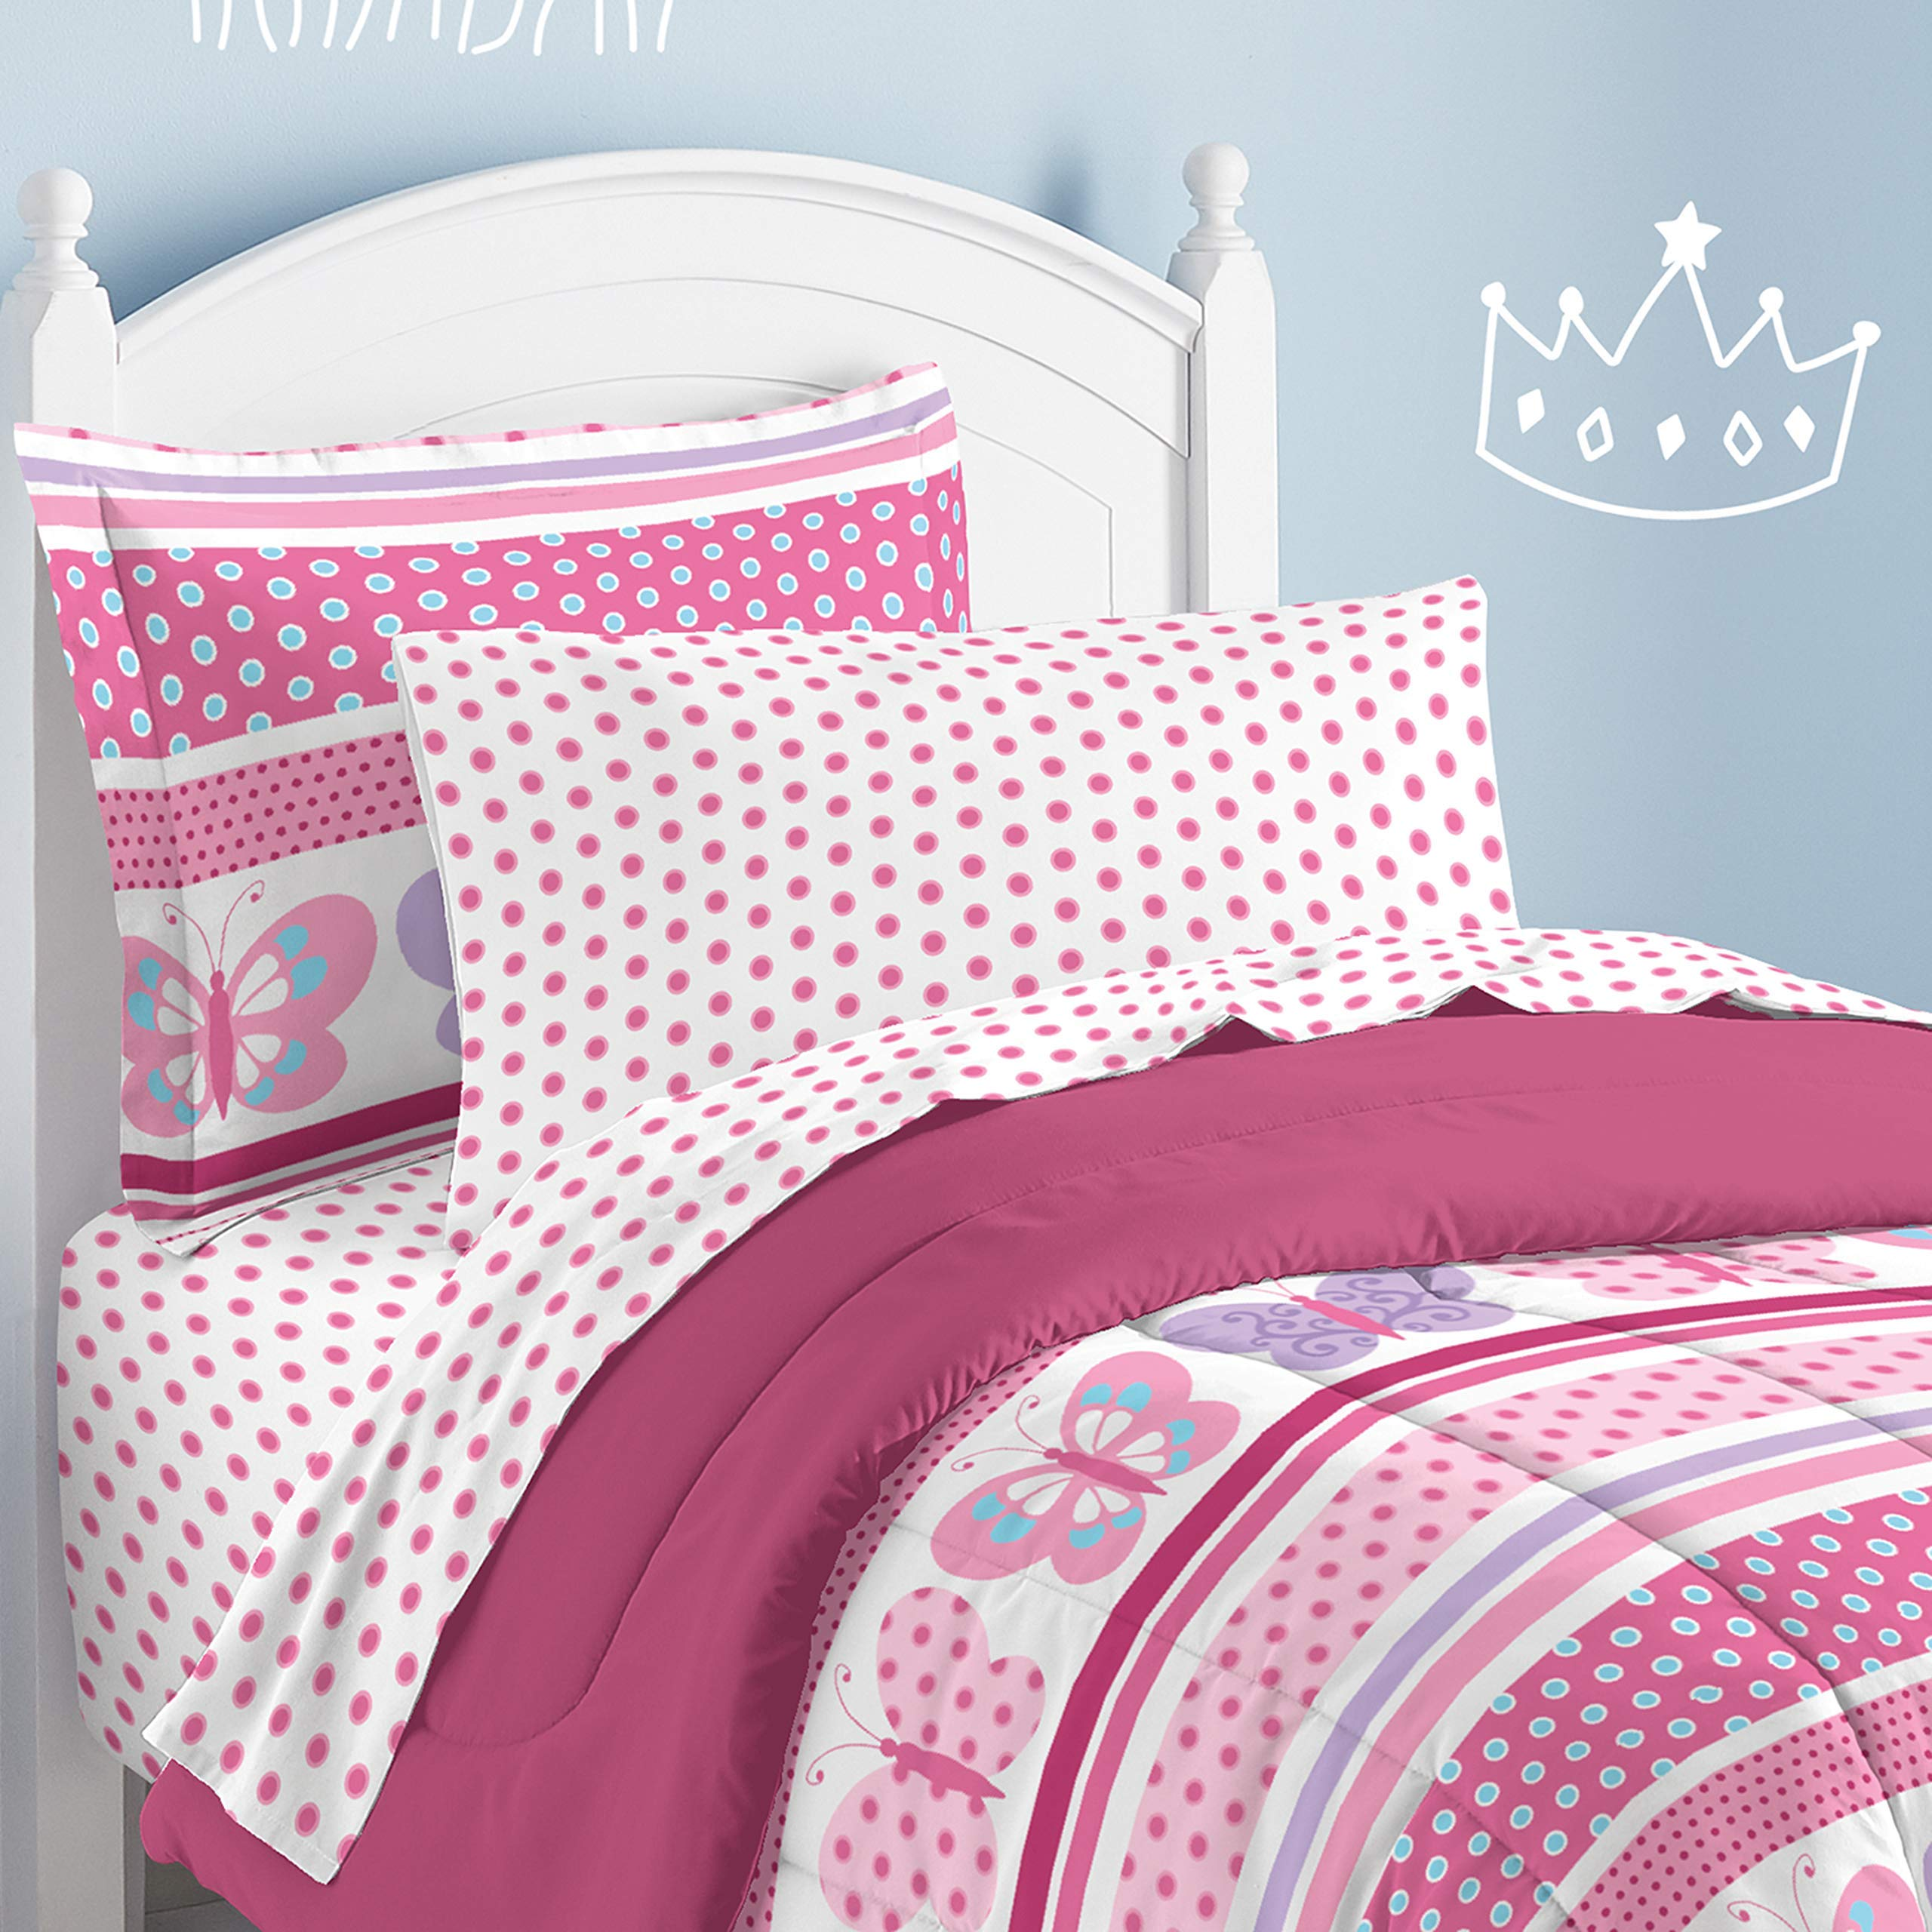 Dream Factory Butterfly Dots Ultra Soft Microfiber Girls Comforter Set, Pink, Twin by Dream Factory (Image #1)